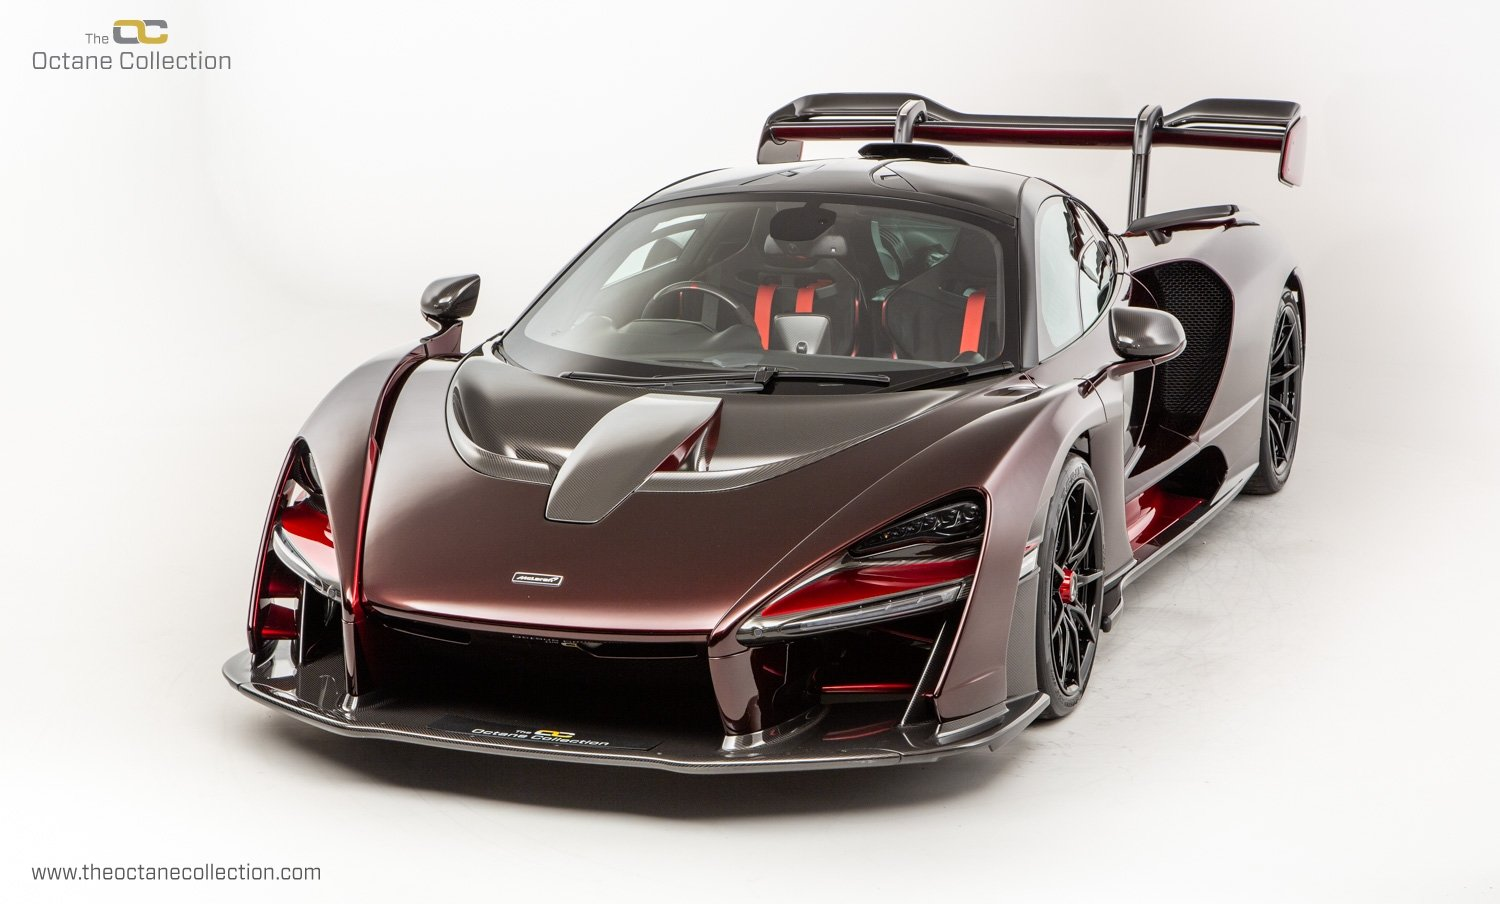 2019 MCLAREN SENNA // 1 OF 1 NERELLO RED // £115K+ MSO OPTIONS For Sale (picture 4 of 27)